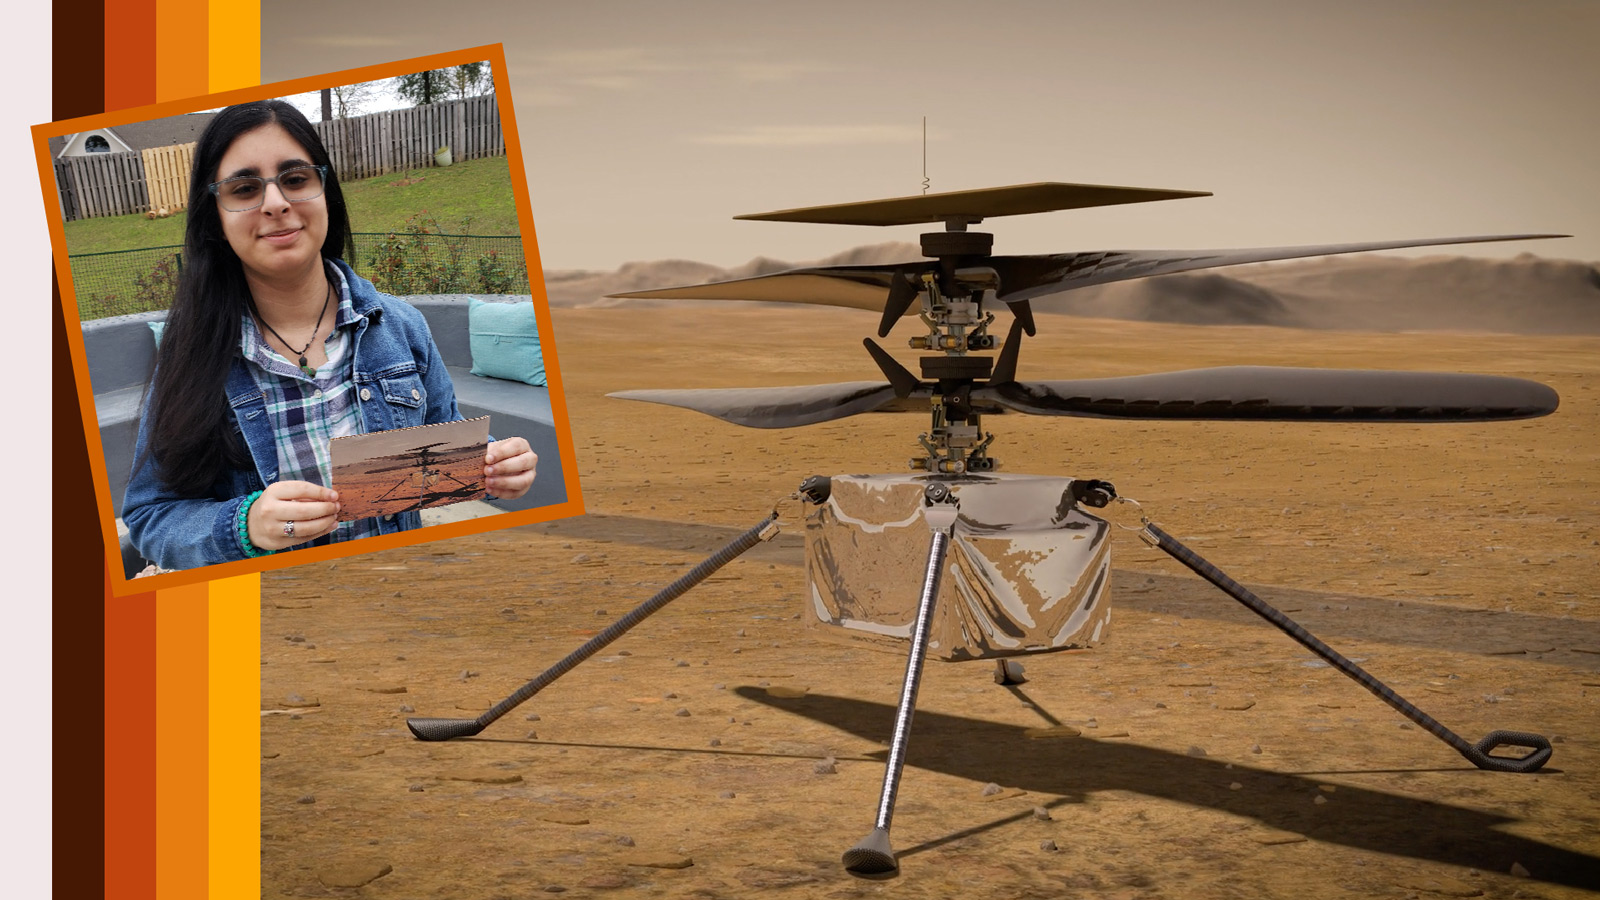 Ingenuity – Alabama High School JuniortStudent Names 1st Ever Red Planet Helicopter for NASA's Mars 2020 Rover Perseverance